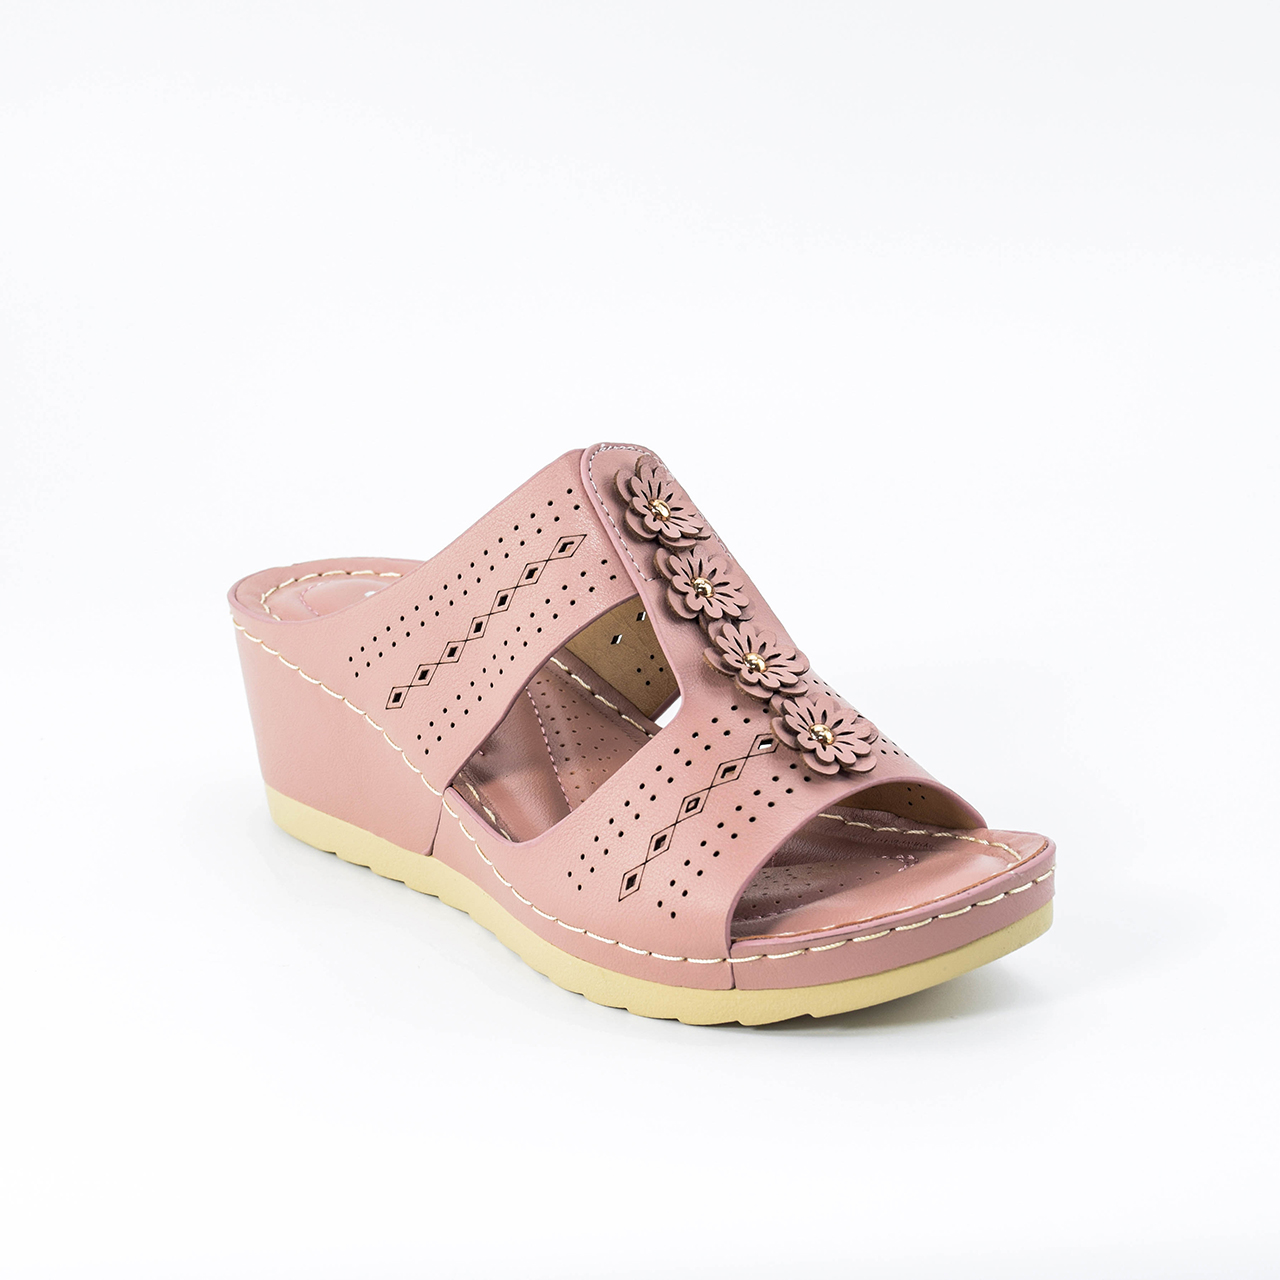 Trinity Wedges in Pink